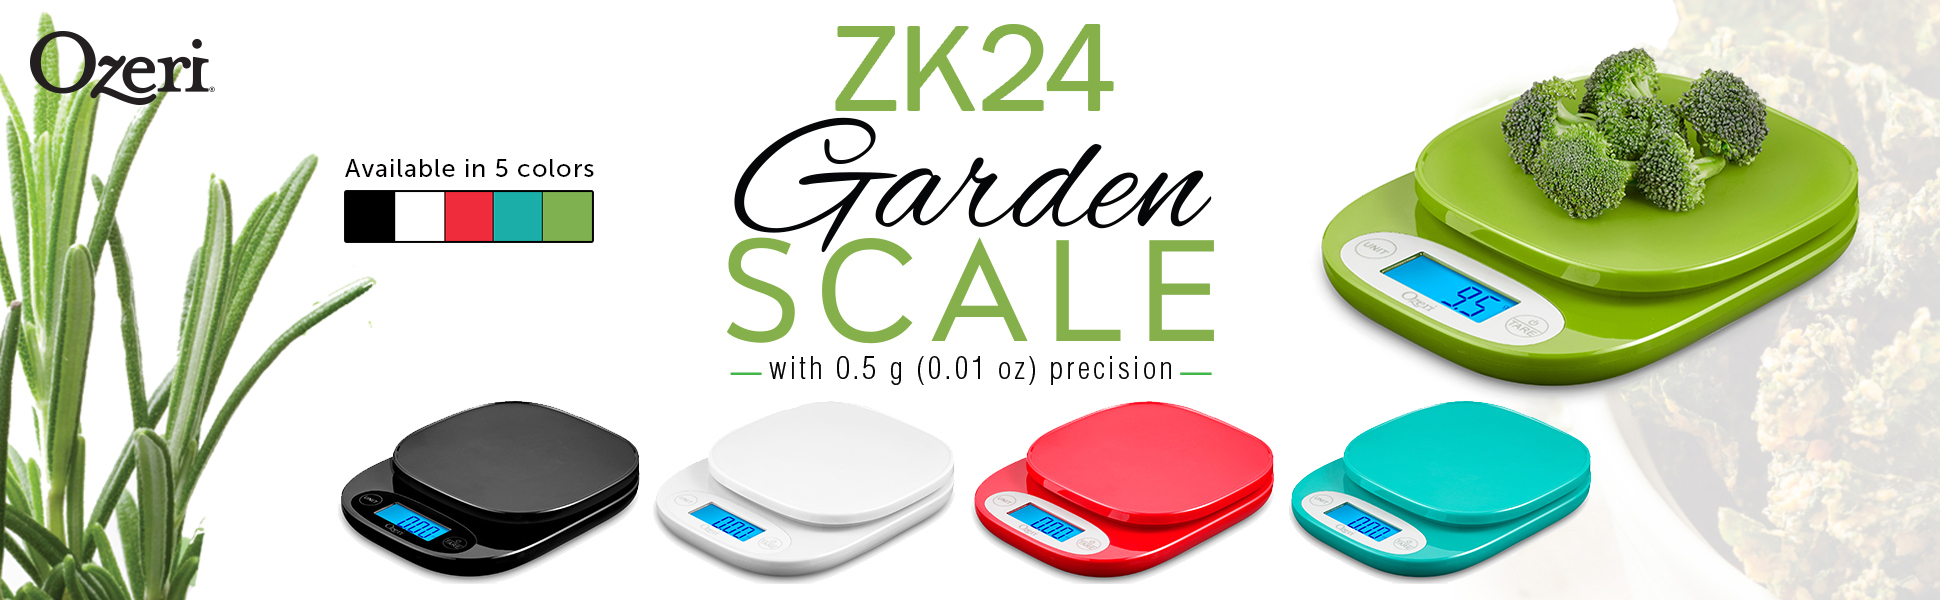 Ozeri ZK24 Garden and Kitchen Scale, with 0.5 g (0.01 oz) Precision Weighing Technology, in Black